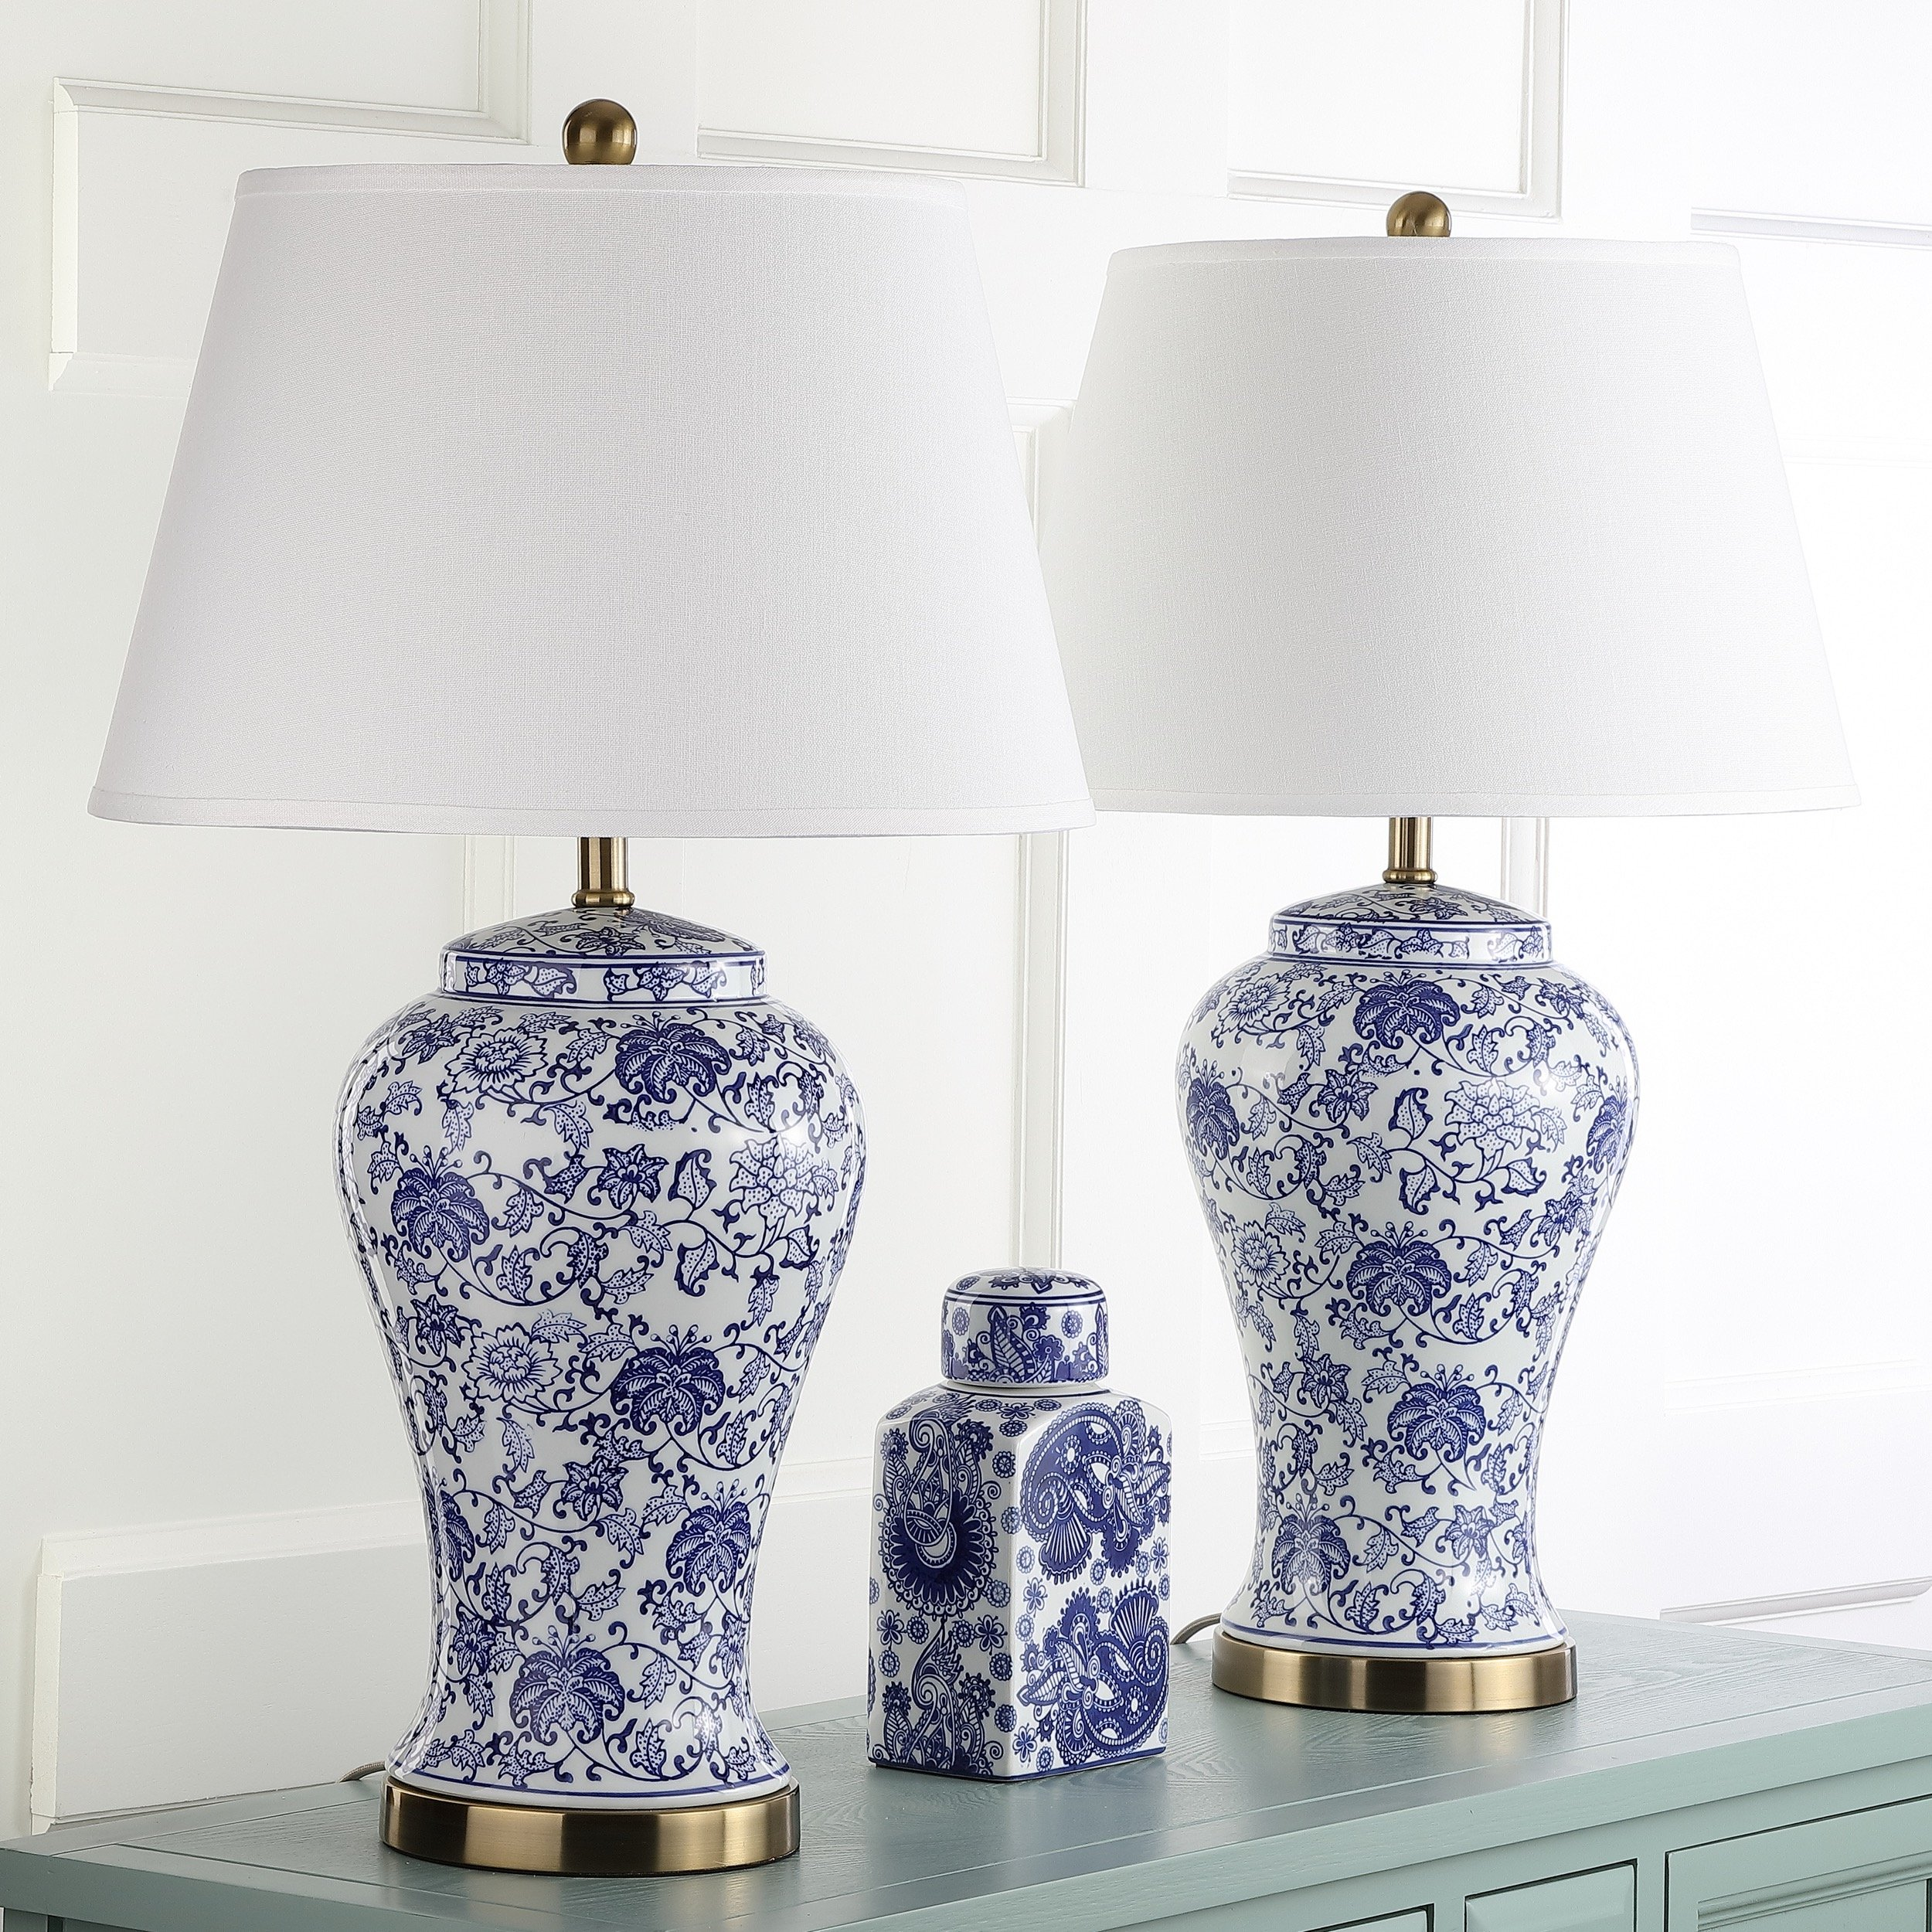 Safavieh Lighting Collection Spring Blossom Multi Floral 29-inch Table Lamp (Set of 2) by Safavieh